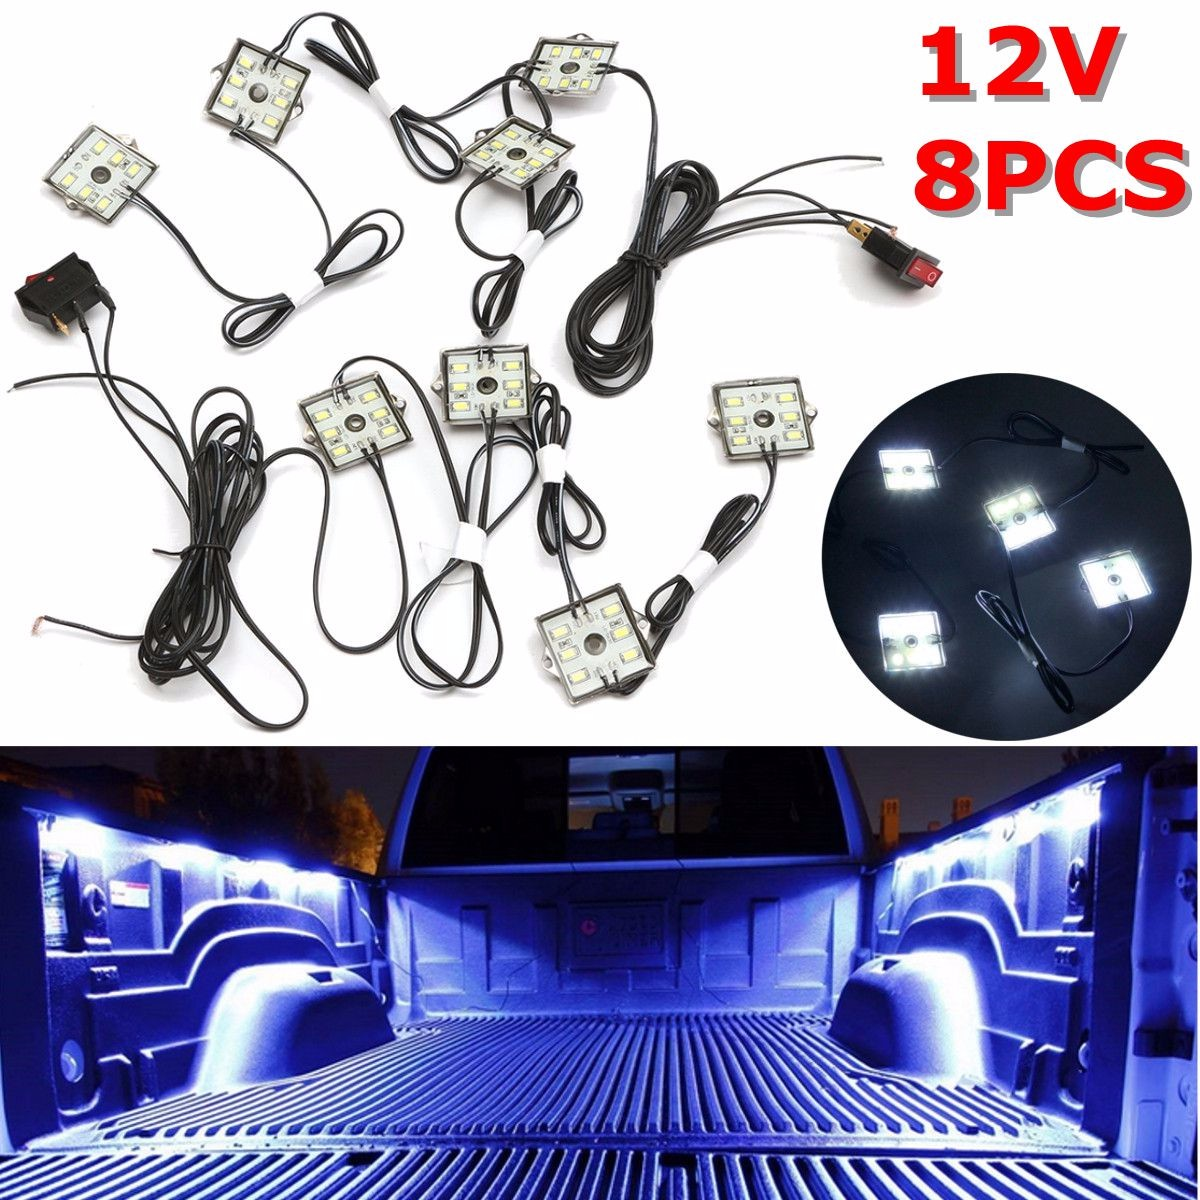 12V 8pcs Waterproof 5630 SMD Truck Bed/Work Box Led Lighting Kit White Beam title=